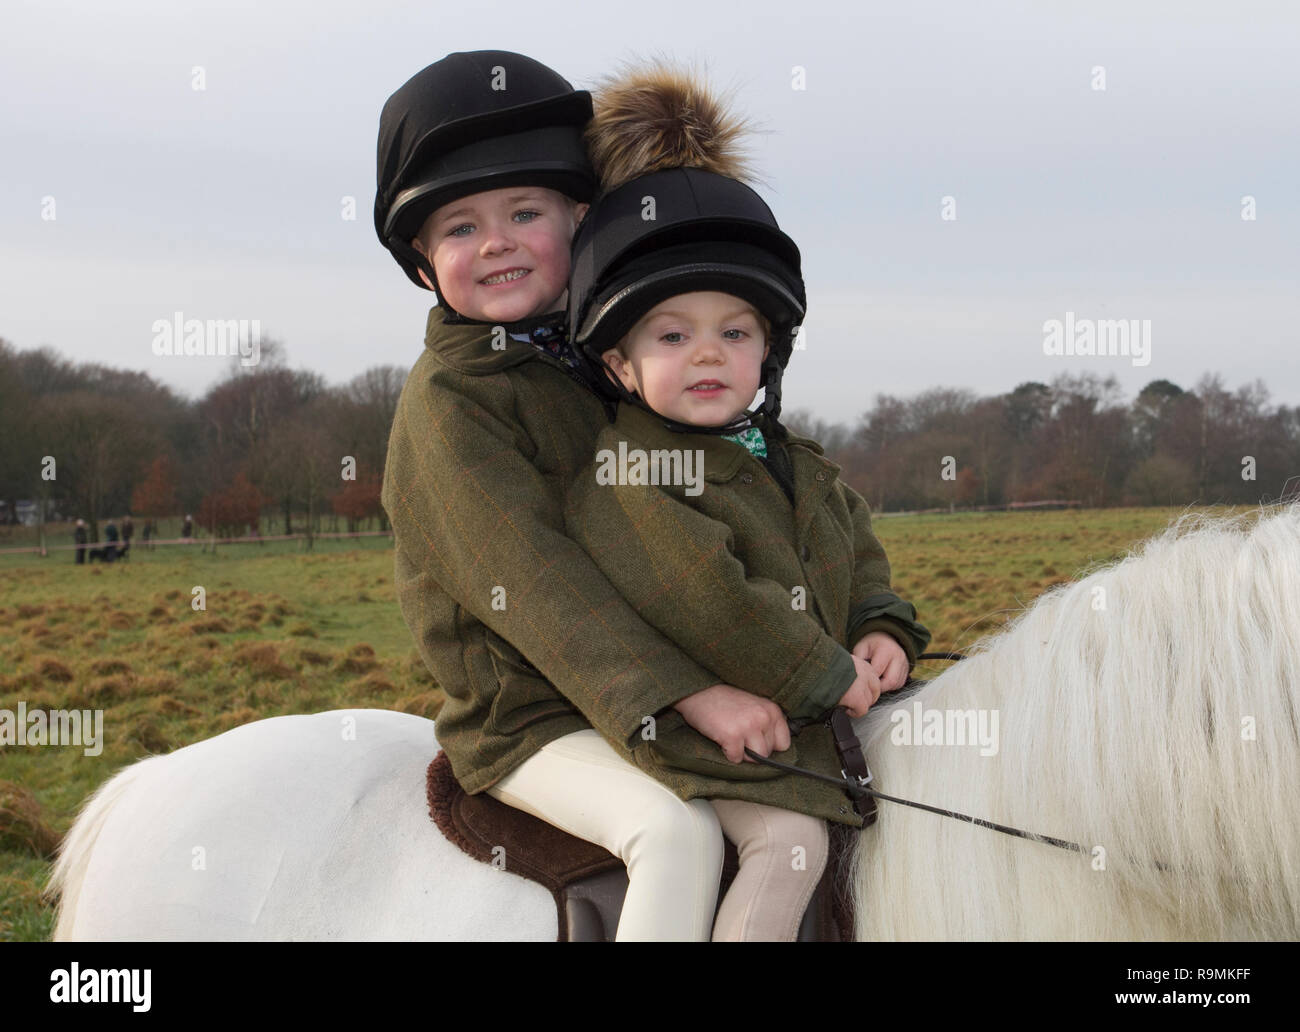 Chorley, Lancashire, UK. 26th Dec. 2018. Walter aged 6 & Fred aged 2 years old at the Boxing day Hunt at Rivington. Horses and hounds returned to Rivington for Holcombe Hunt's traditional Boxing Day meet. Hundreds of spectators gathered to support the ride out, as they set off for a three-hour ride following the sound of the horn.  Hunting live quarry with dogs was banned in 2004, after the Speaker of the Commons invoked the Parliament Act to force the legislation through. Credit: MediaWorldImages/Alamy Live News - Stock Image